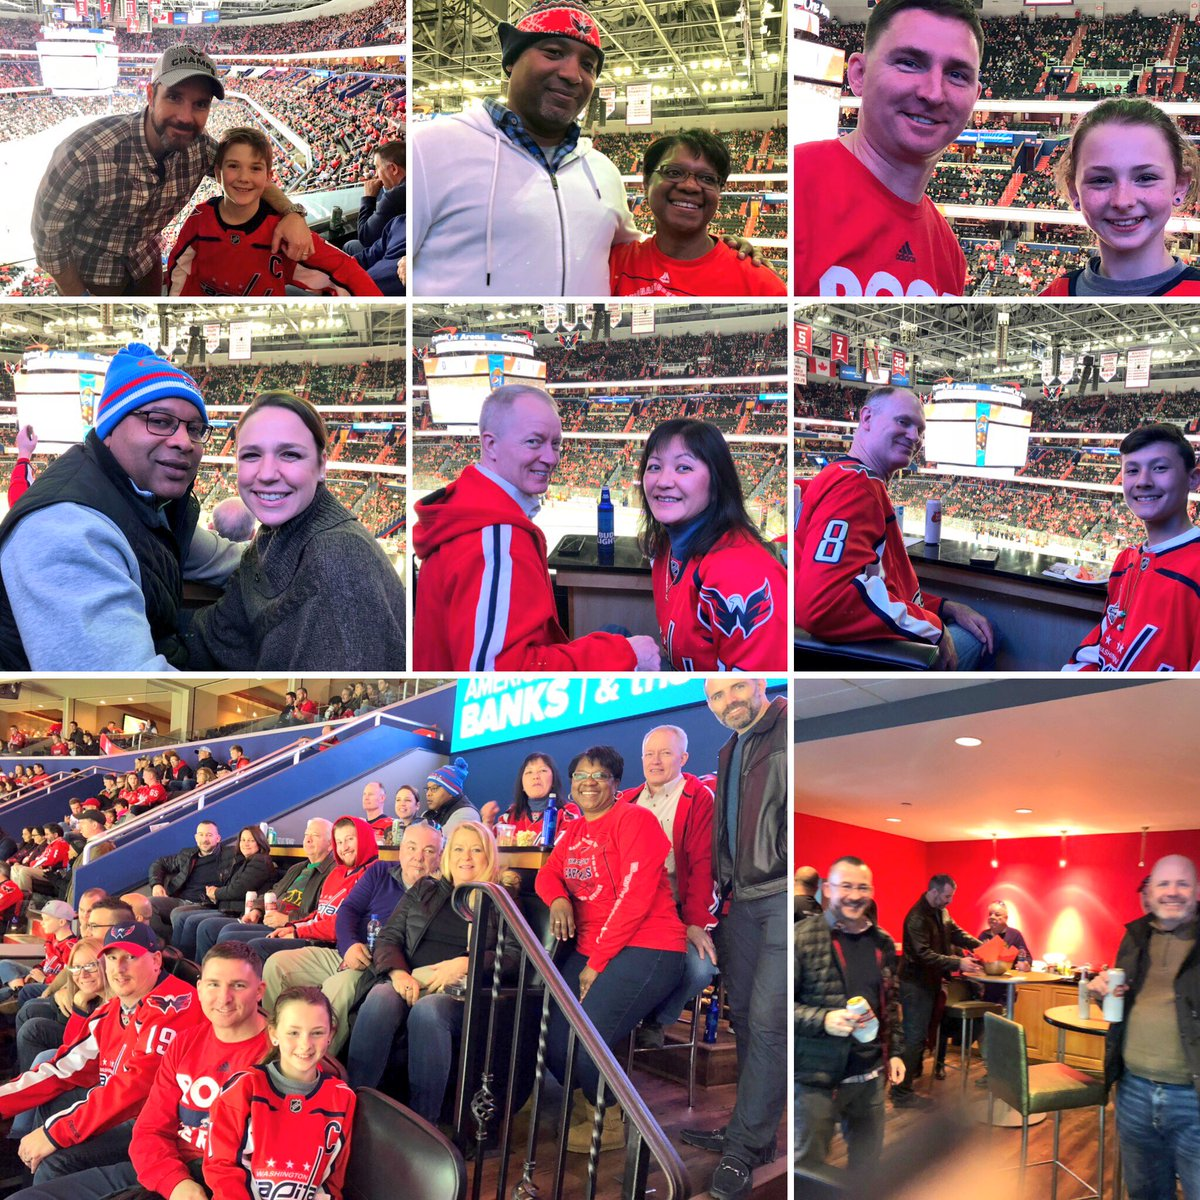 We're honoring local @SOSi_HQ veterans tonight at the @Capitals game. Here are some of our vets and their families having a great time together. To SOSi vets and everyone who has served our country, we thank you for your service! #VeteransDay2018 #ChallengeAccepted